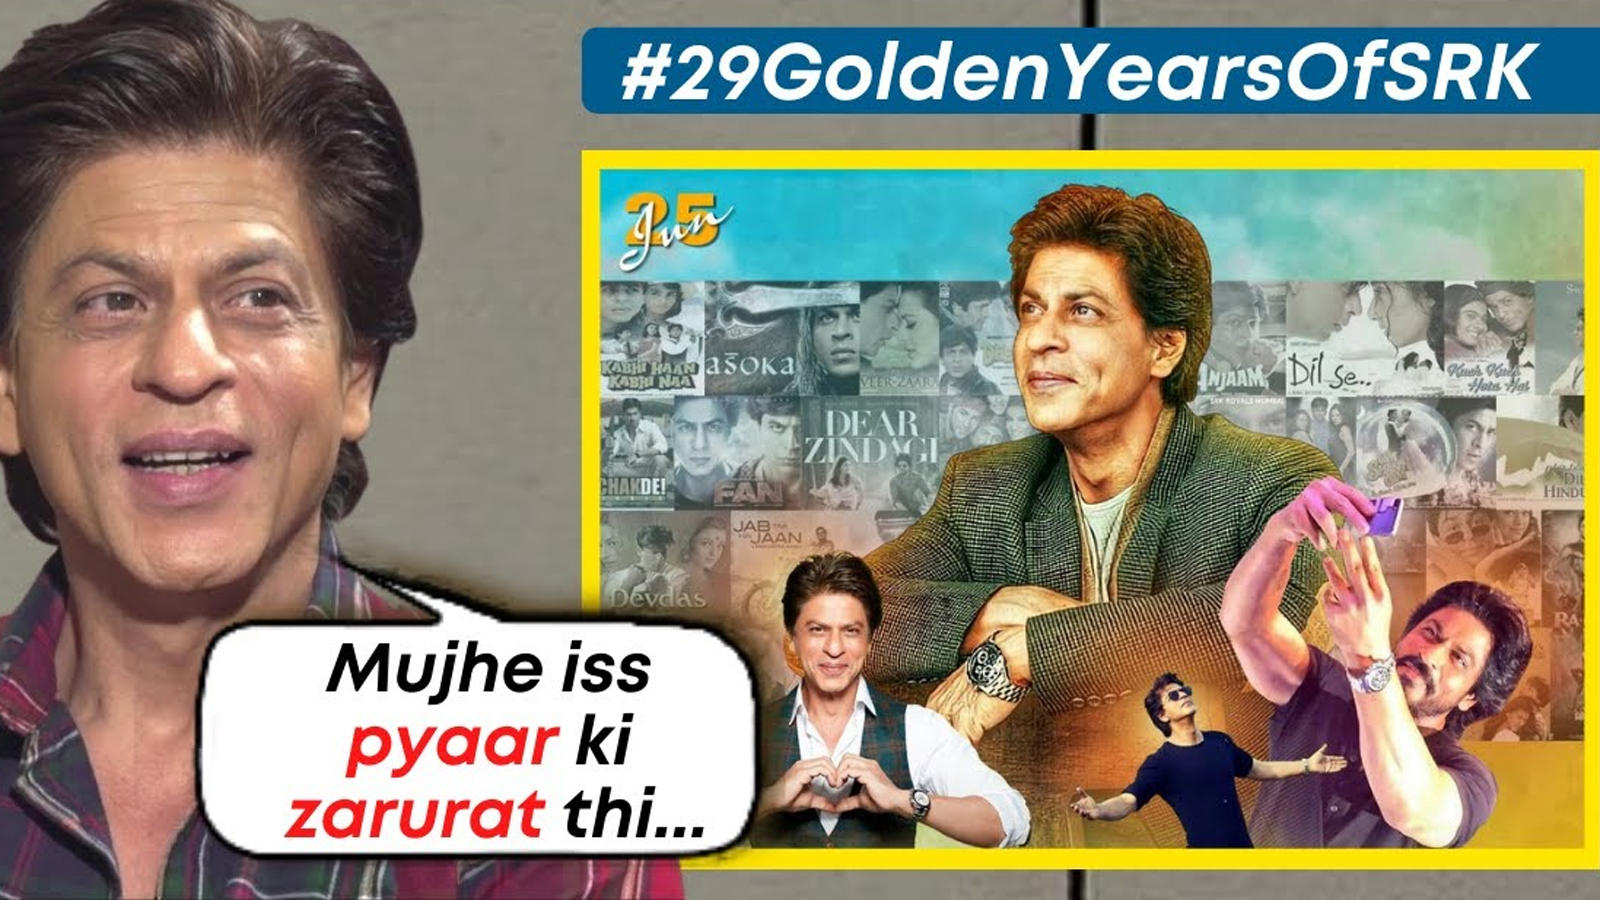 29goldenyearsofsrk-shah-rukh-khan-gives-special-message-to-his-fans